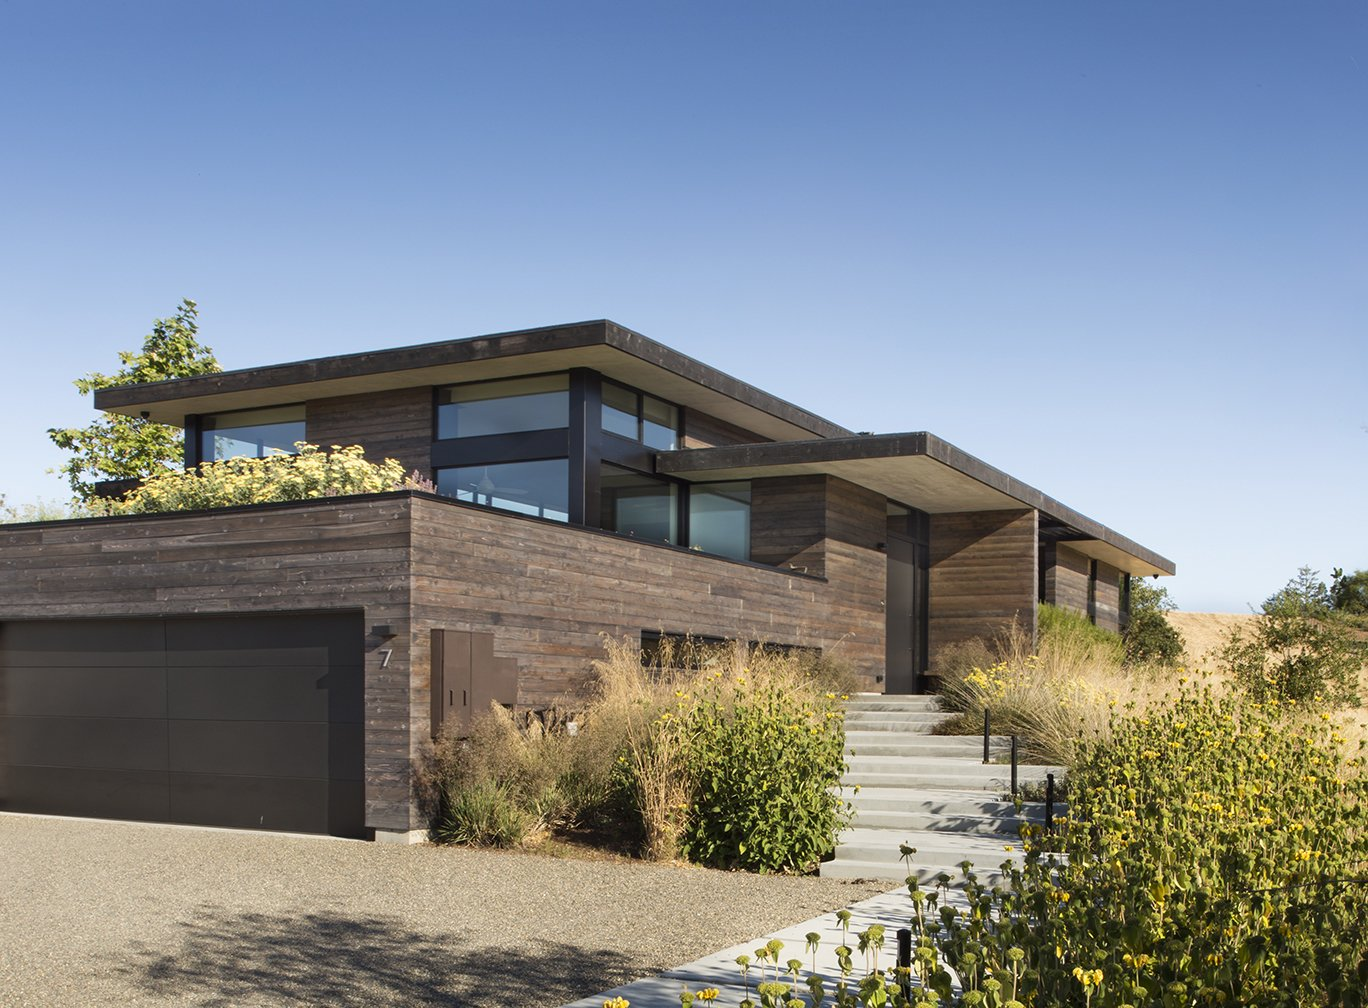 Exterior, Wood Siding Material, House Building Type, and Green Roof Material  The Meadow Home by Feldman Architecture